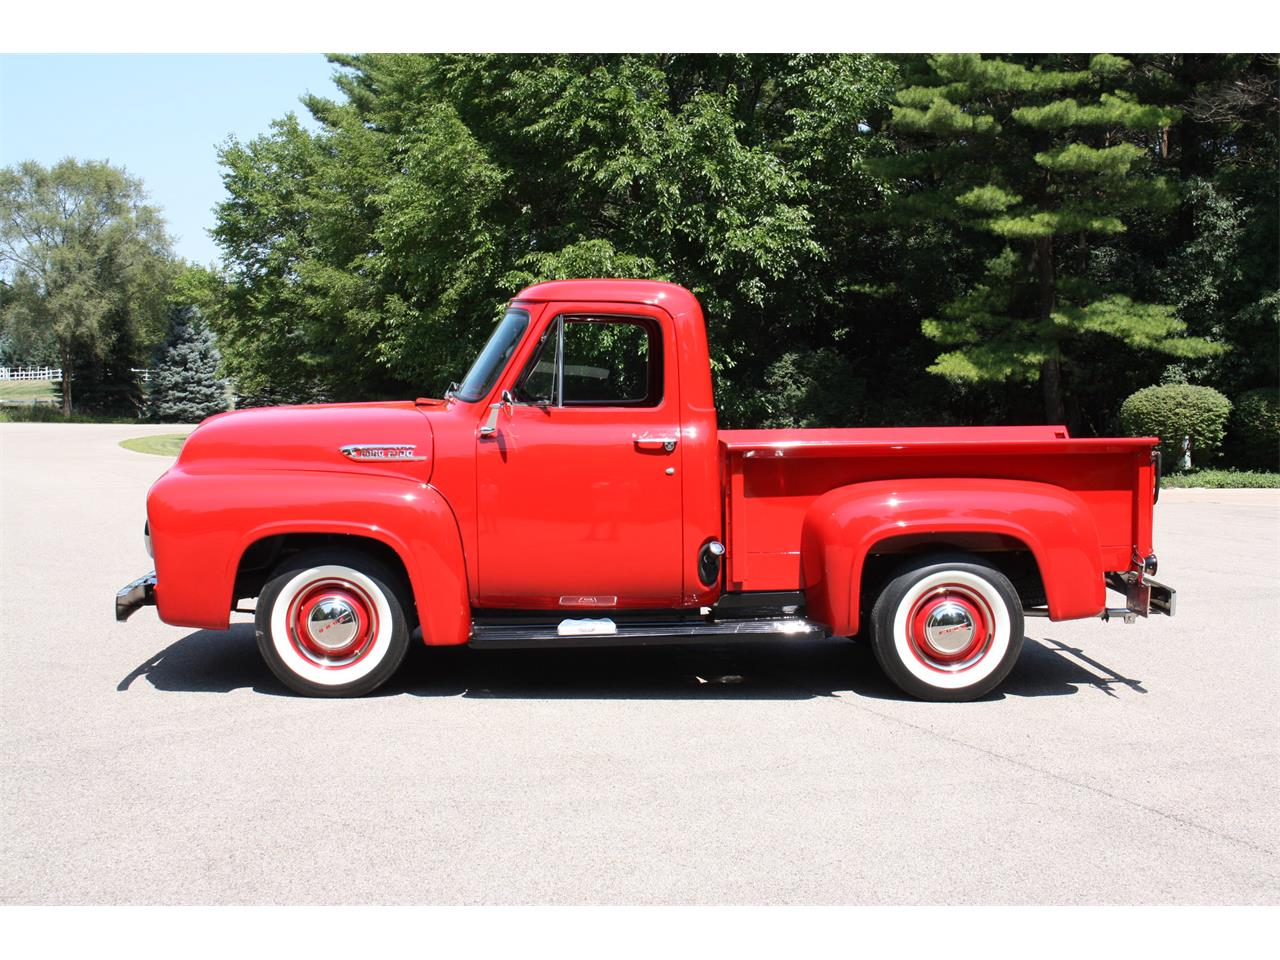 Large Picture of Classic 1953 F100 located in Woodstock Illinois Auction Vehicle Offered by Aumann Auctions - OD67